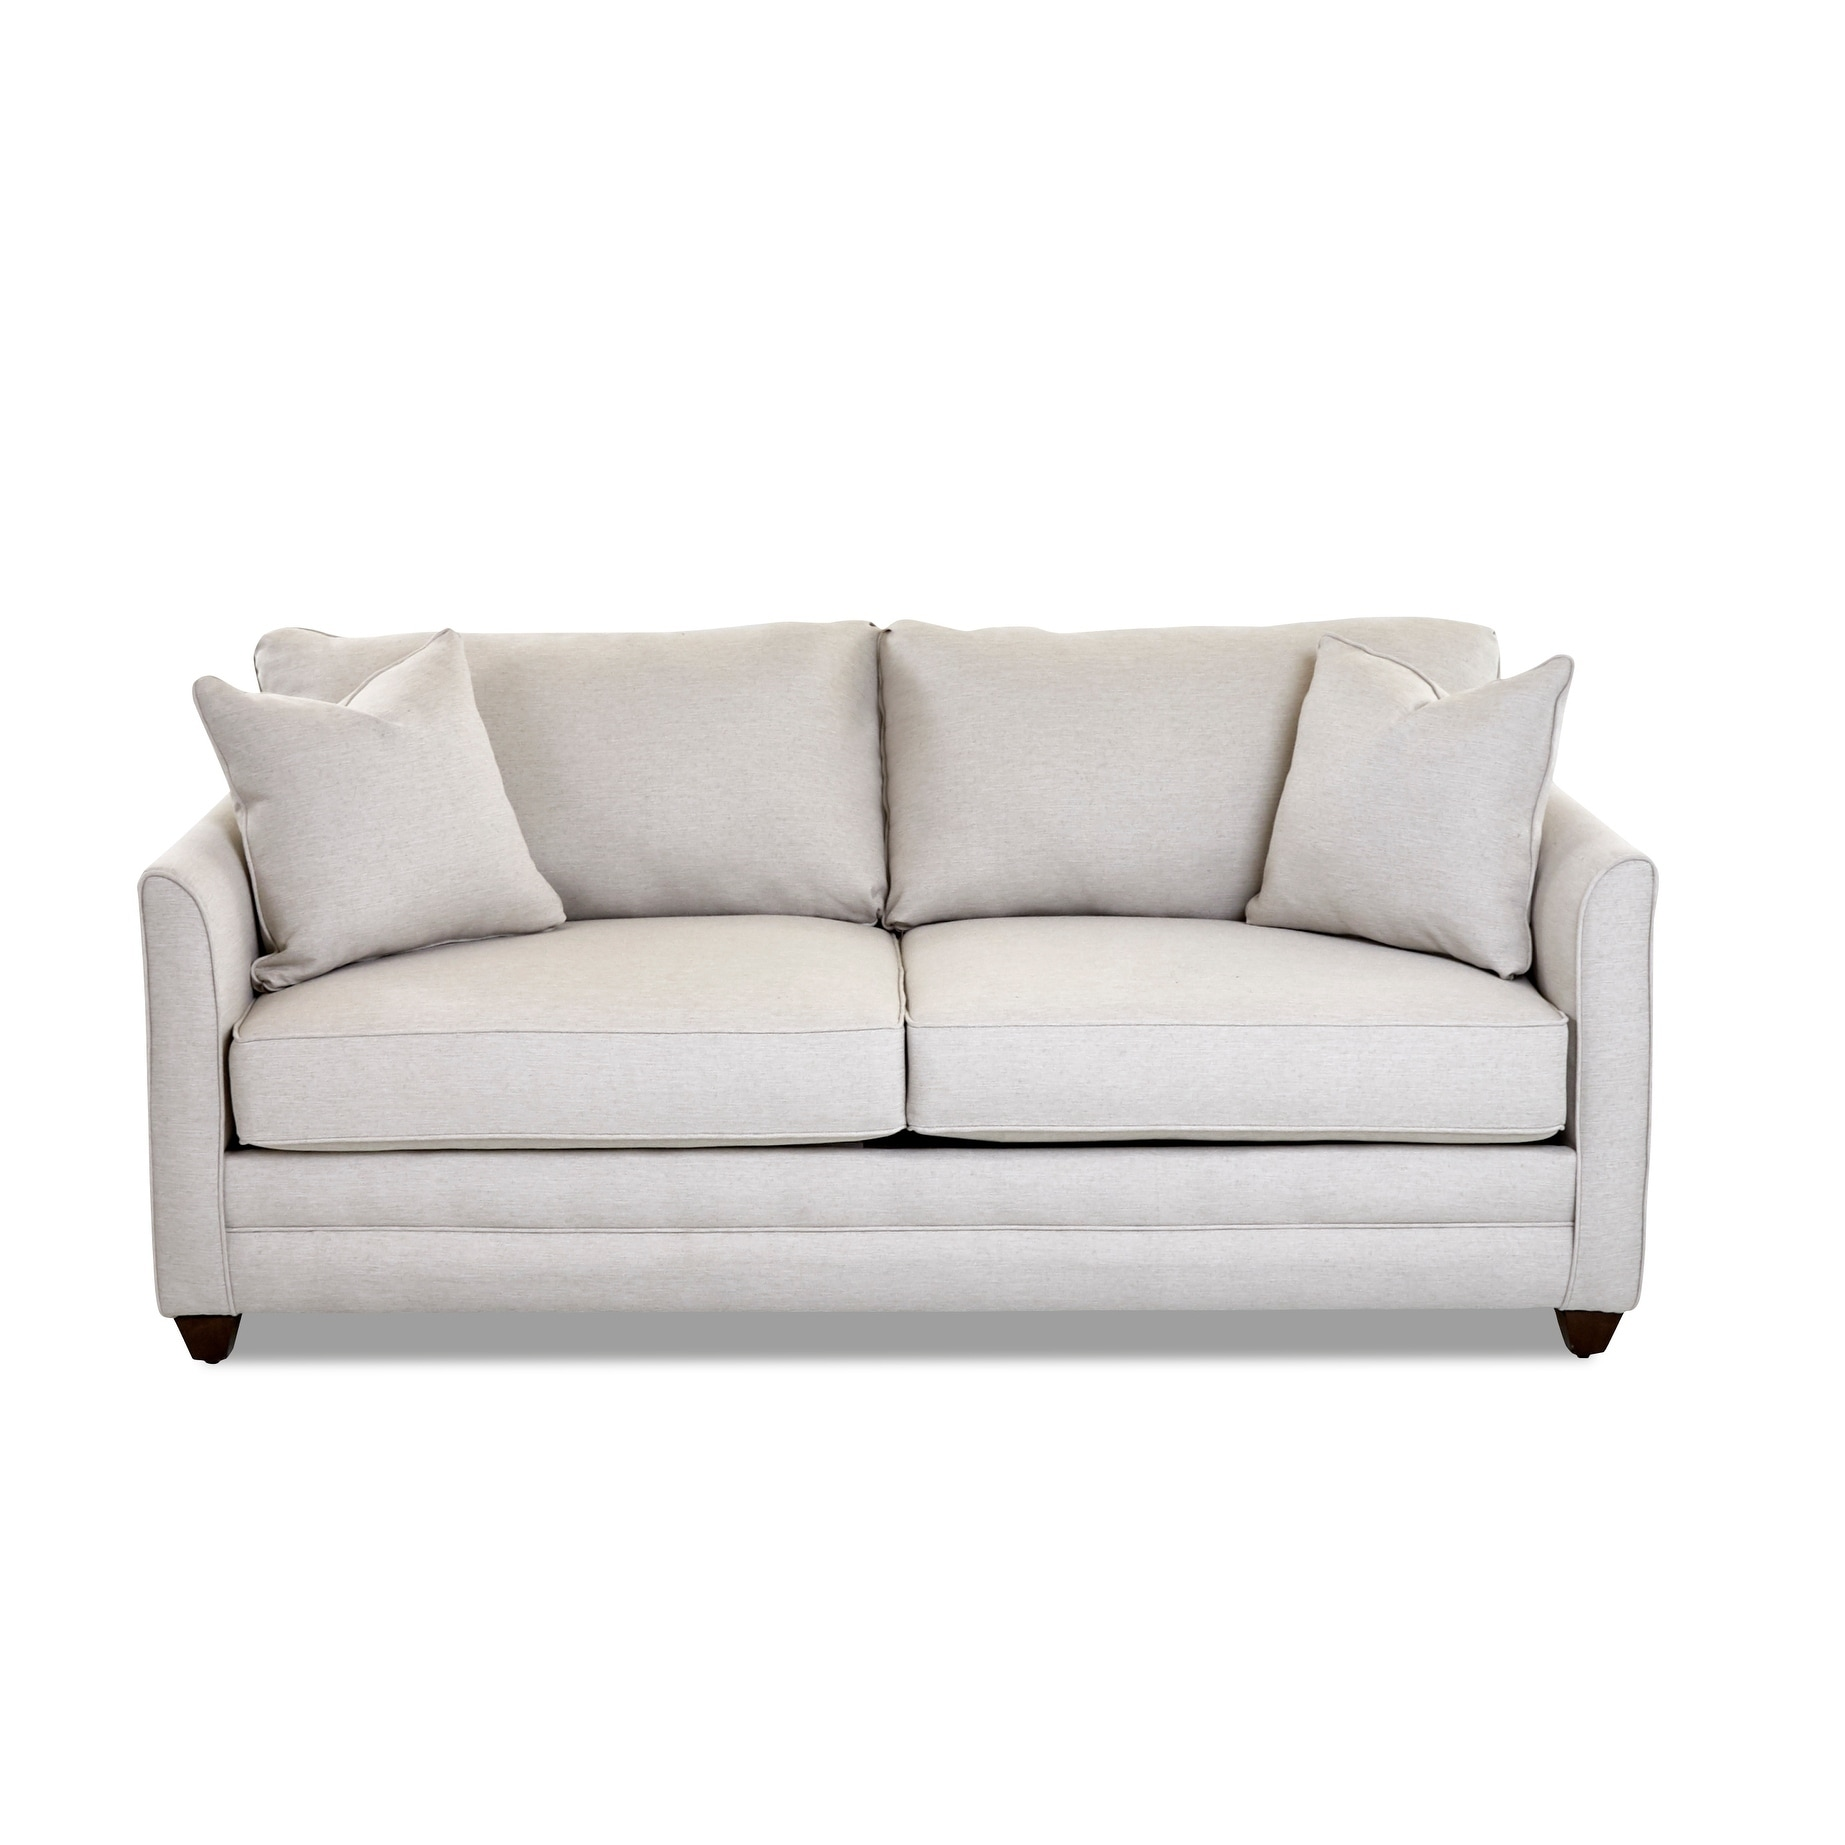 Astounding Taylor Queen Size Sleeper Sofa By Klaussner Inzonedesignstudio Interior Chair Design Inzonedesignstudiocom